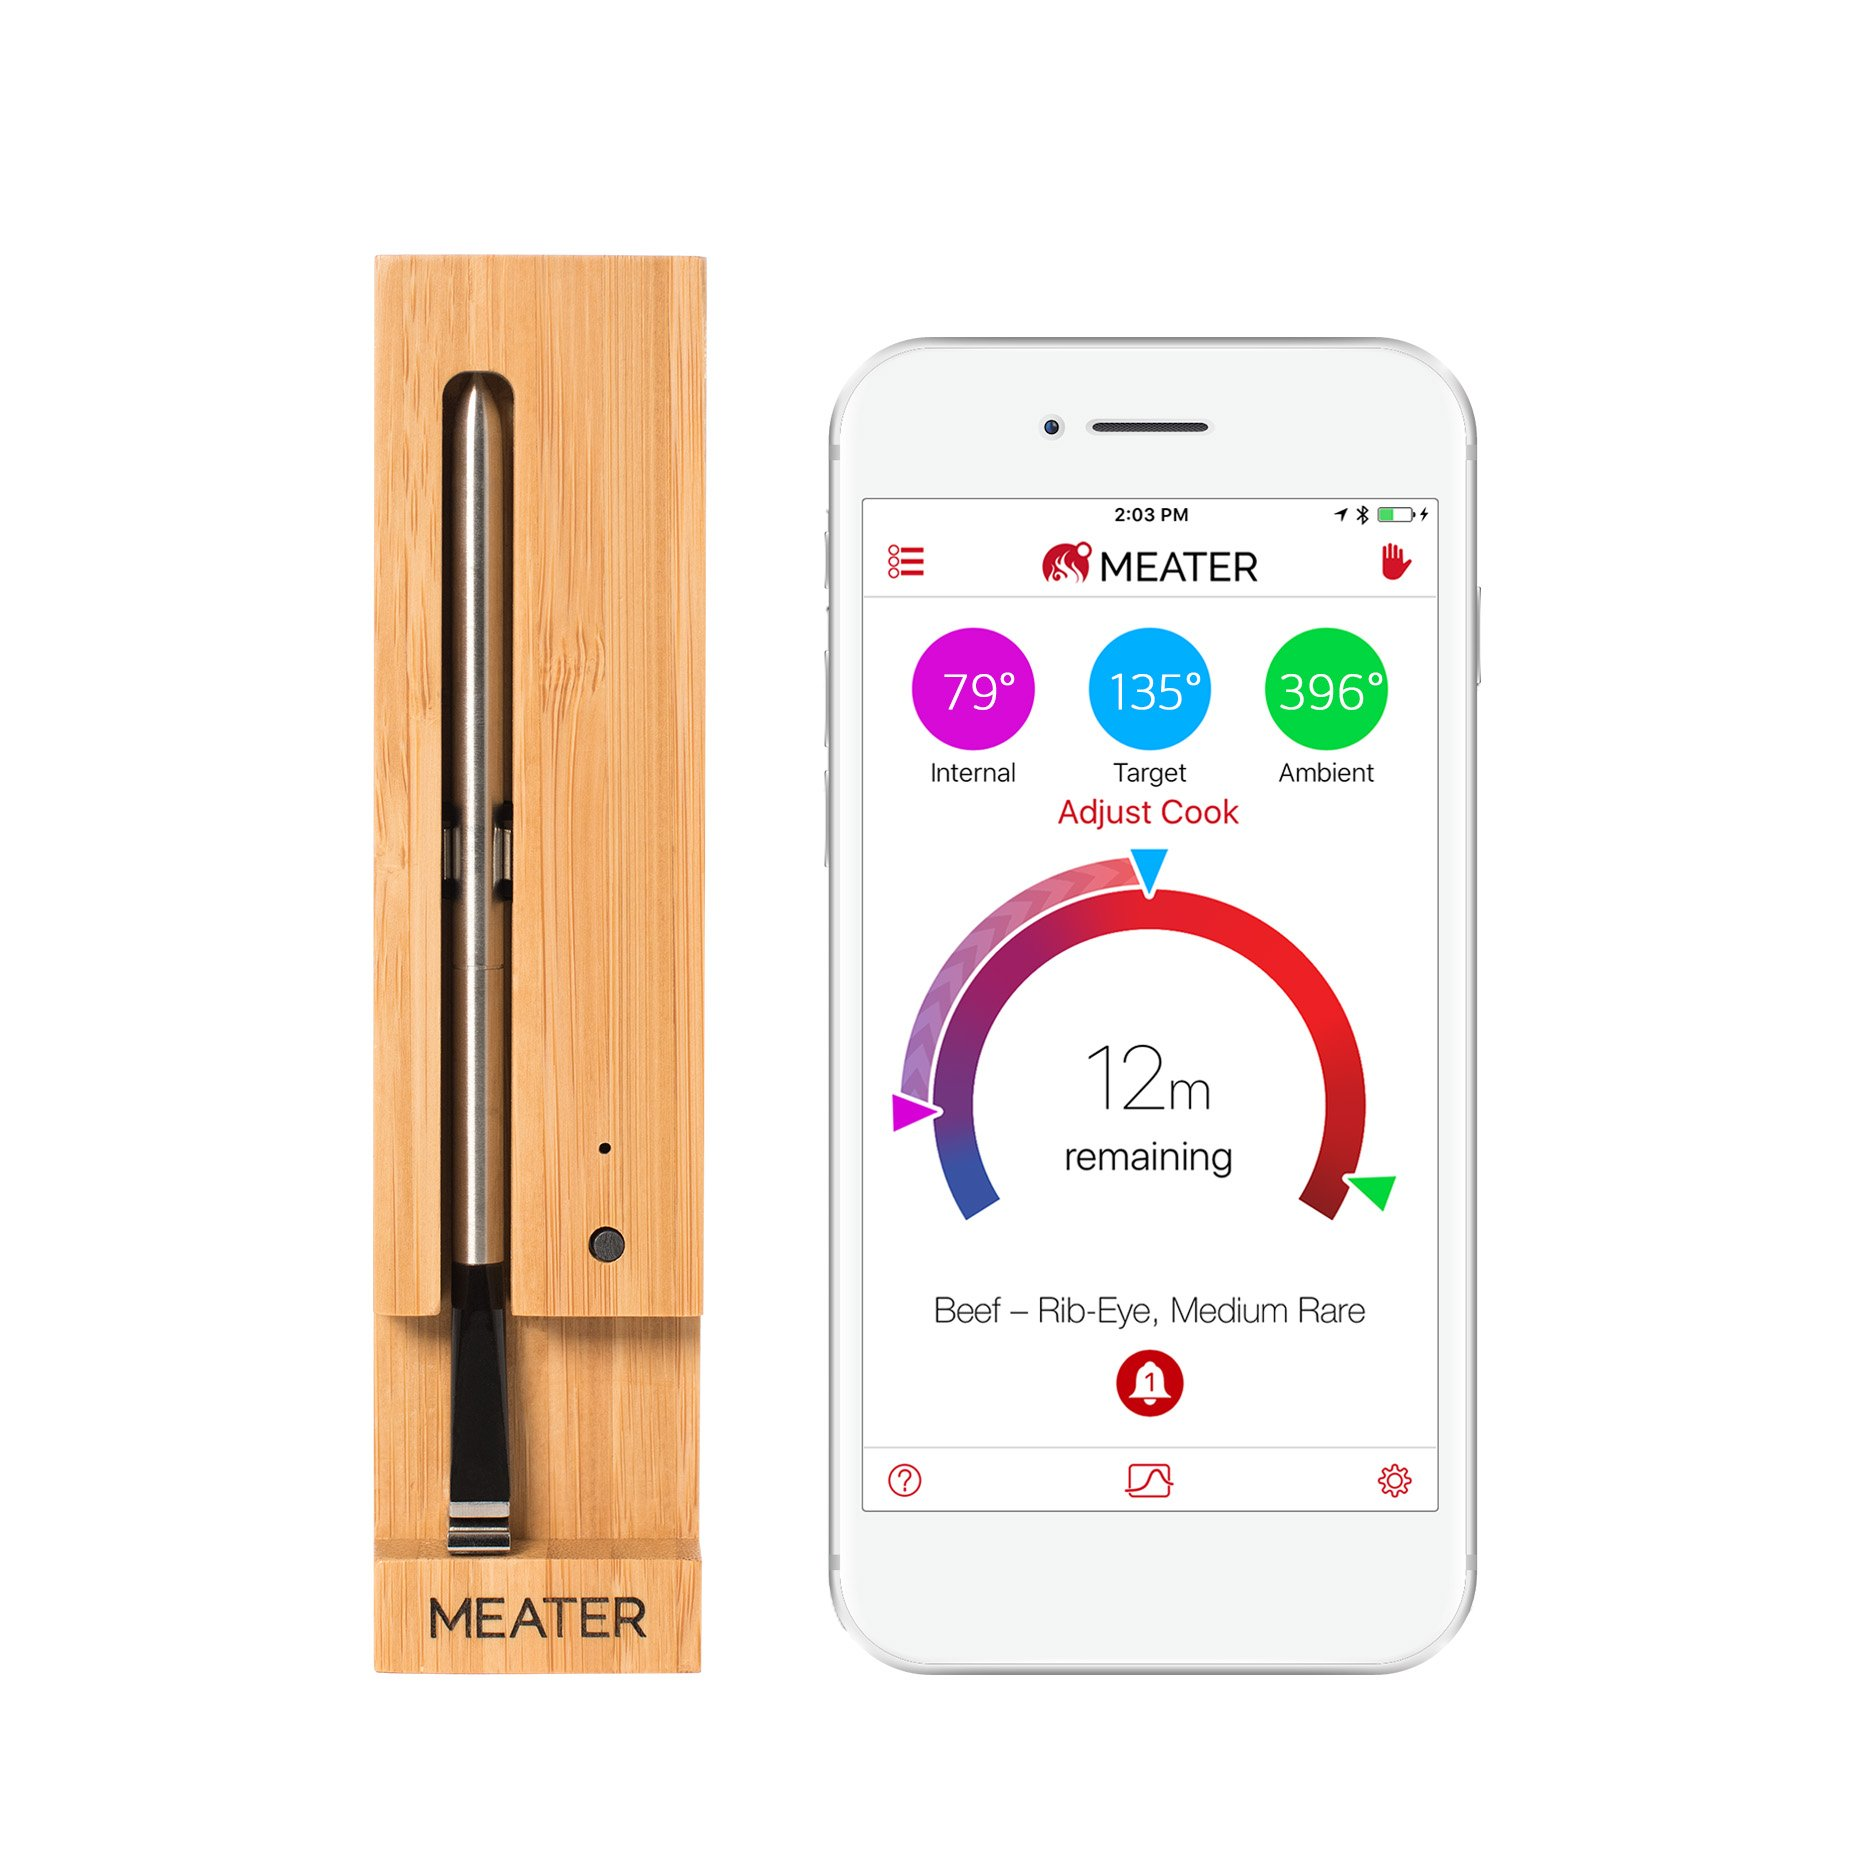 MEATER Up to 33 Feet Original True Wireless Smart Meat Thermometer for the Oven Grill Kitchen BBQ Rotisserie with Bluetooth and WiFi Digital Connectivity